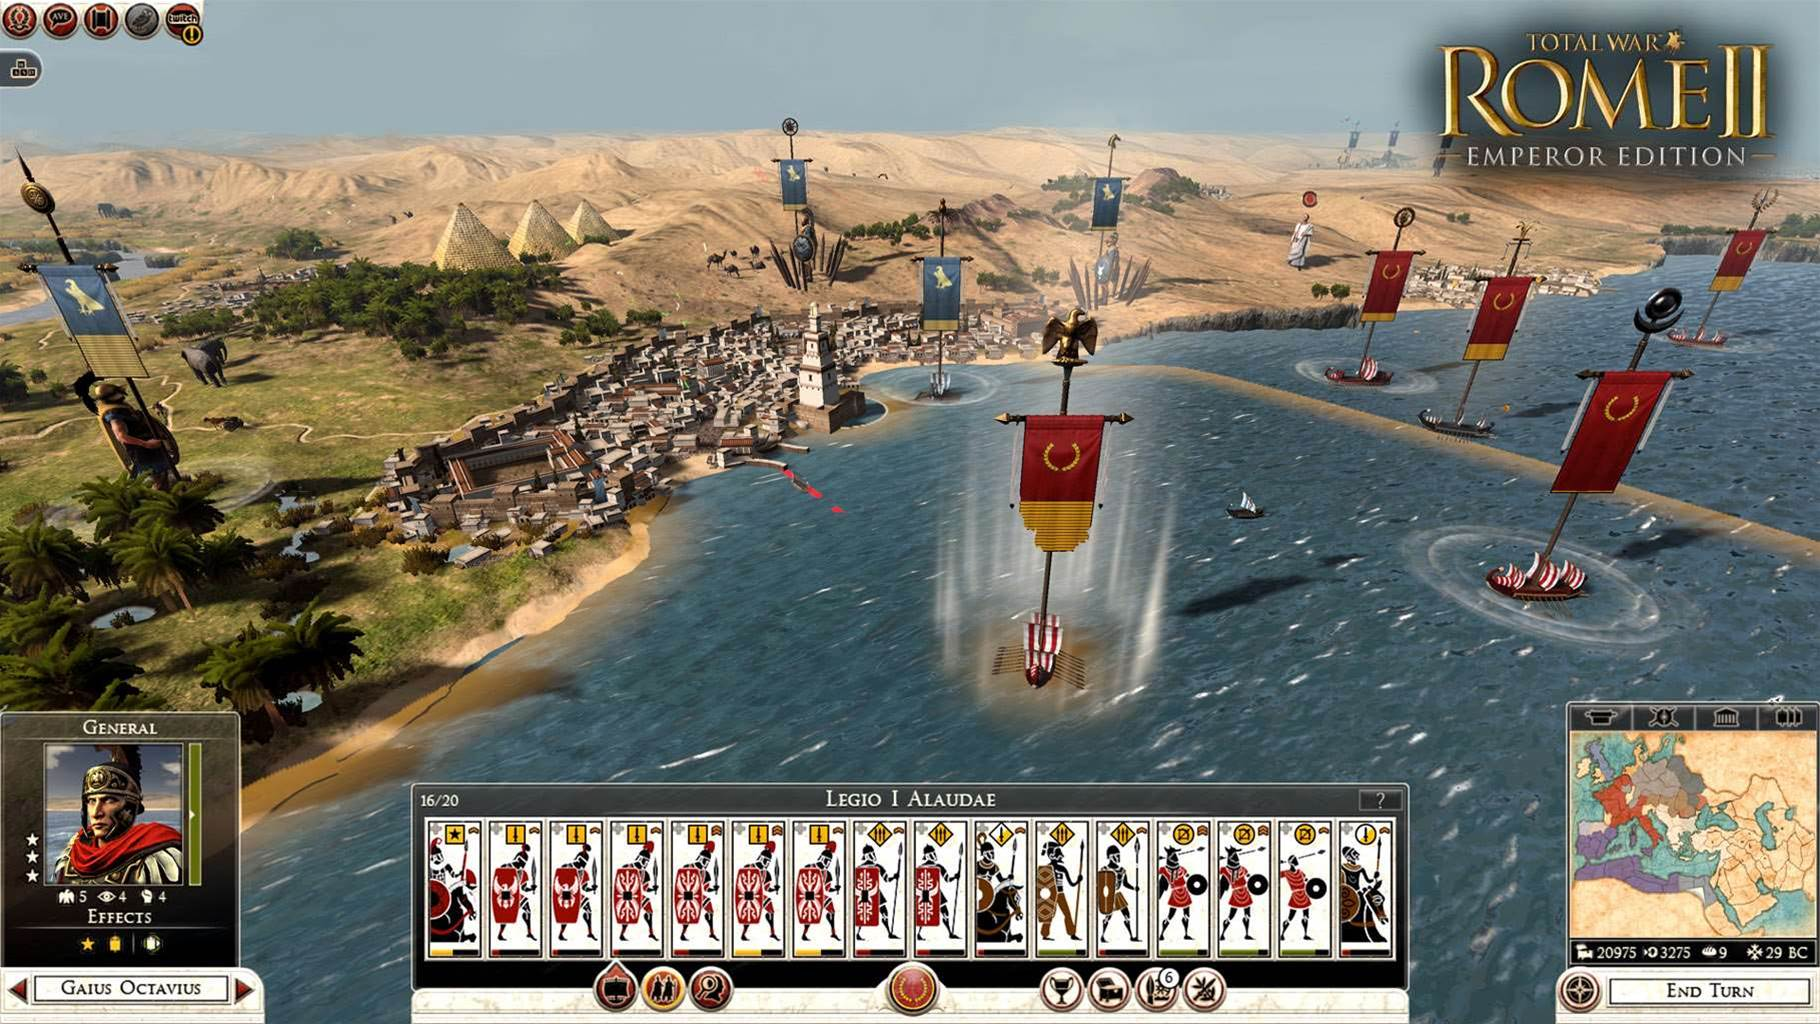 New Rome II expansion coming soon, free for current players